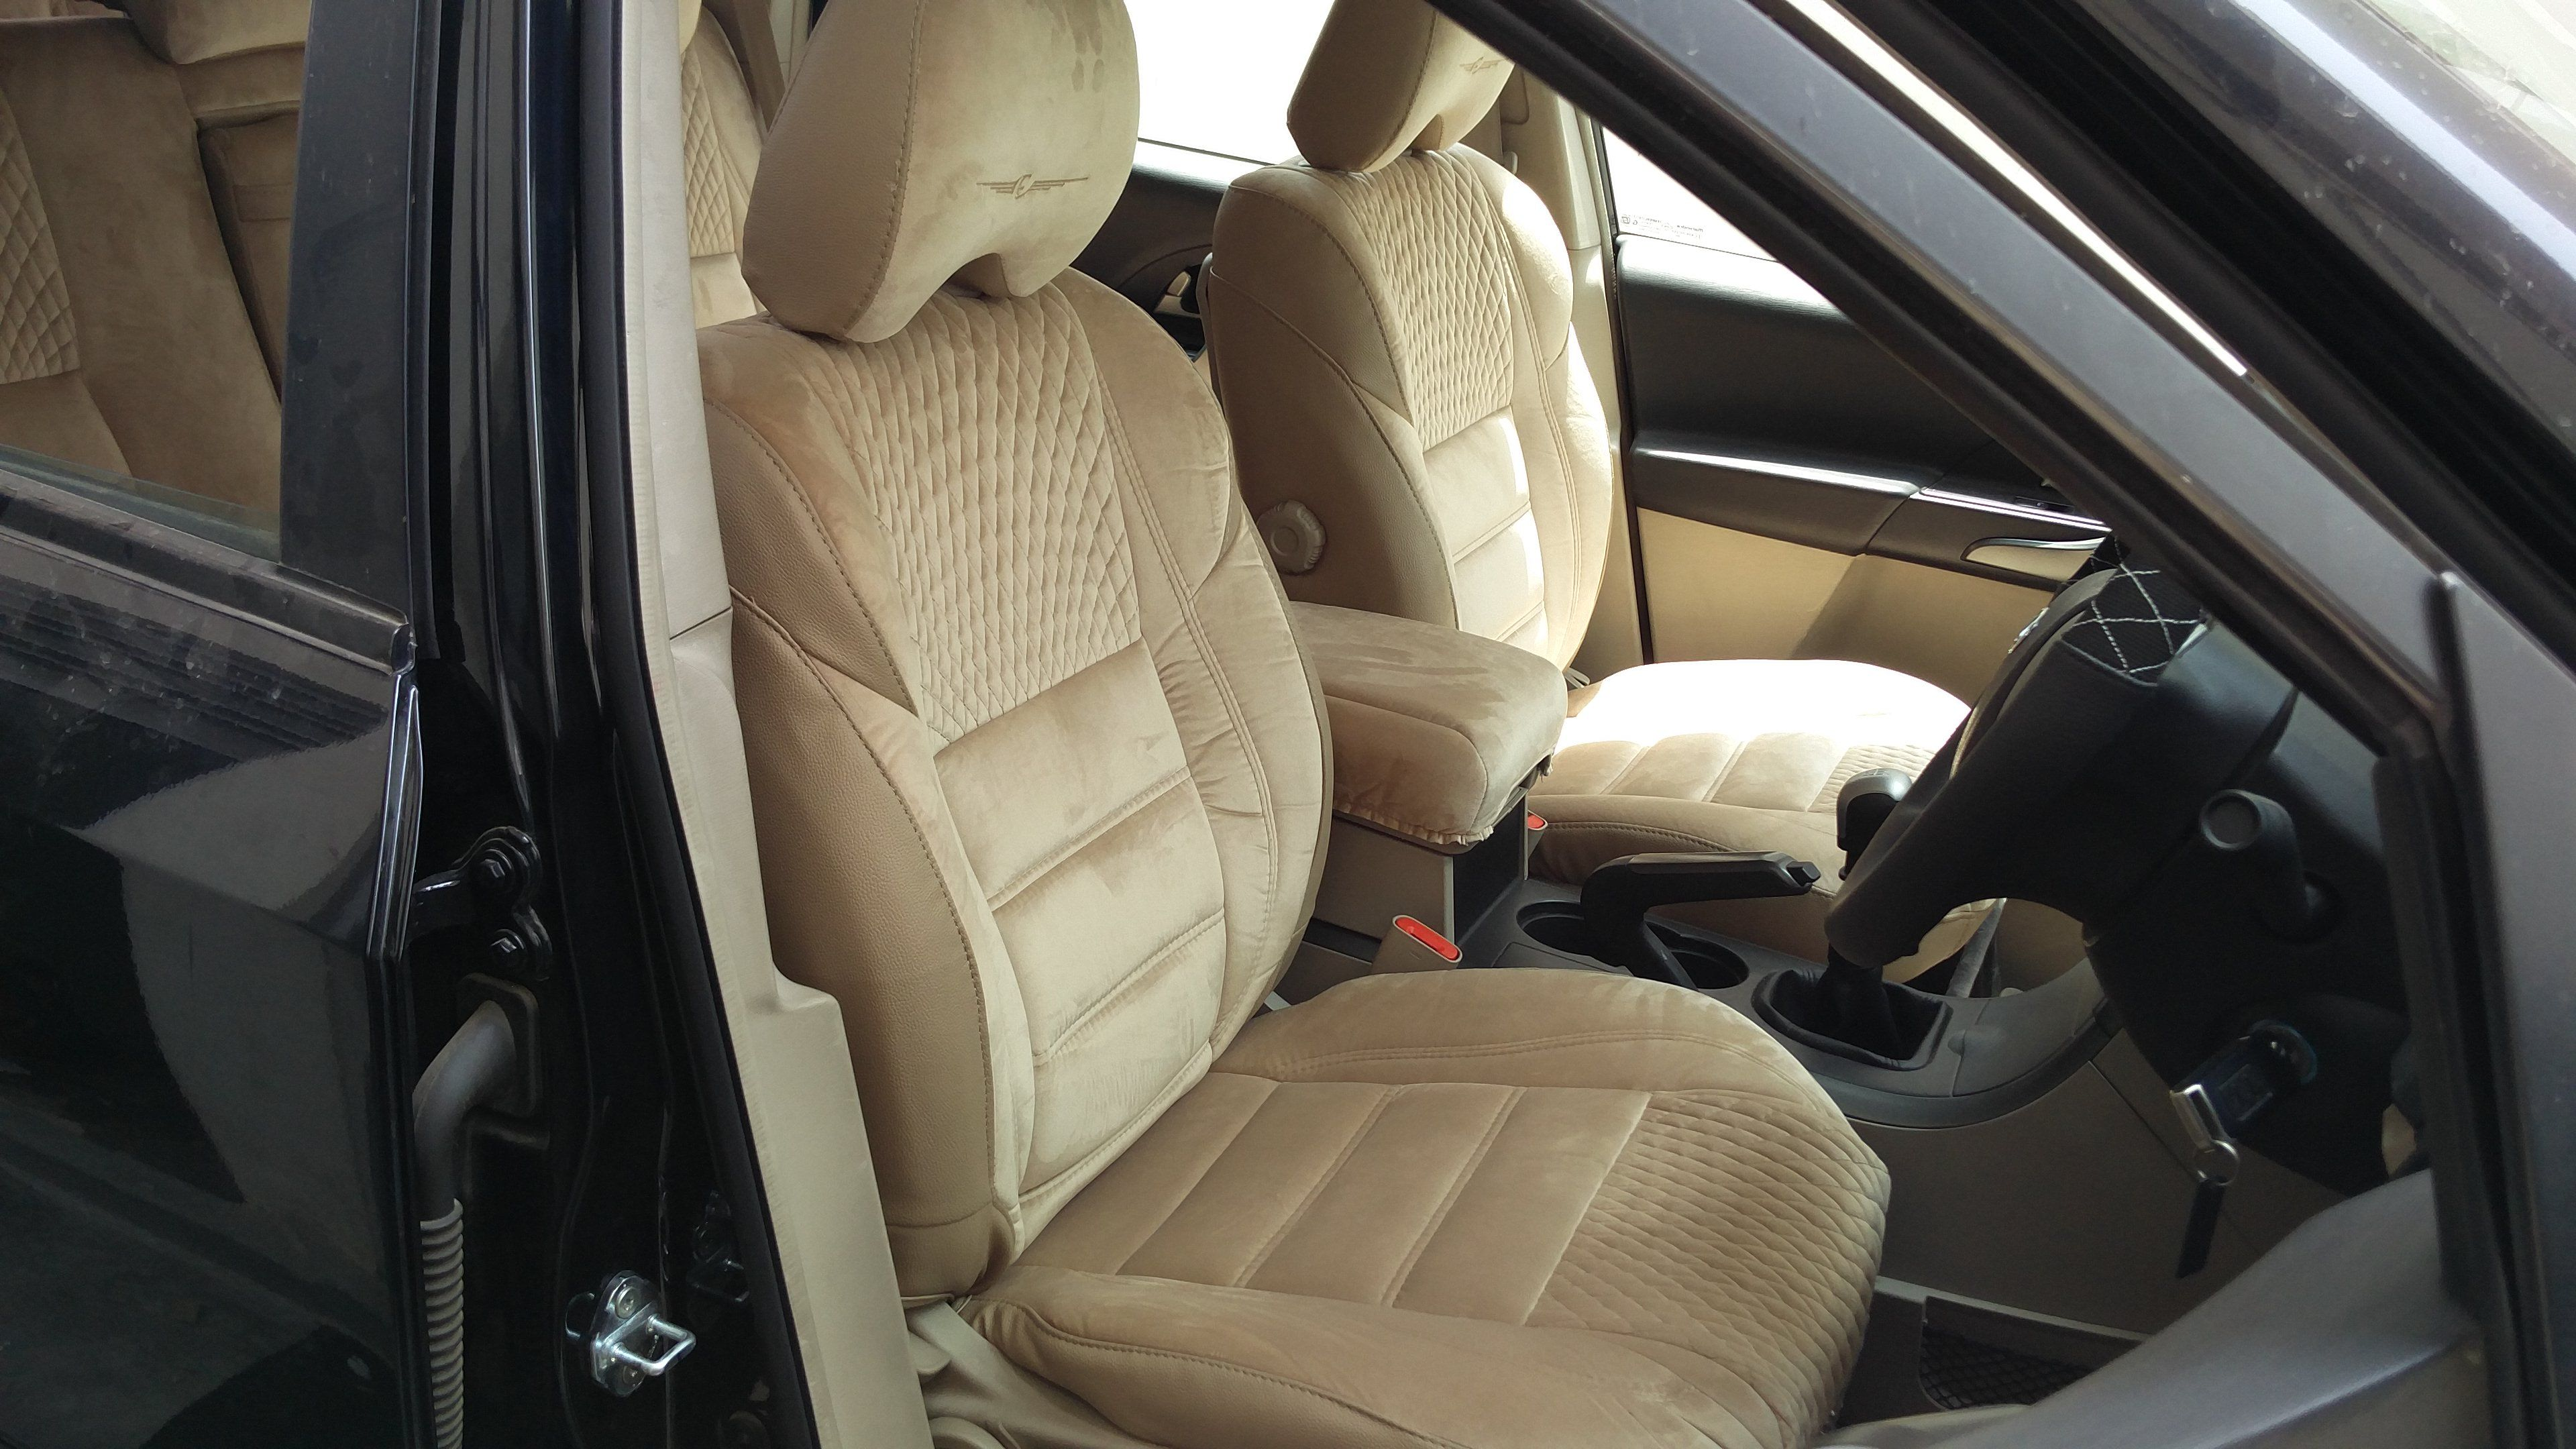 Car Seat Cover shop in Ghaziabad | Car Accessories store in Ghaziabad